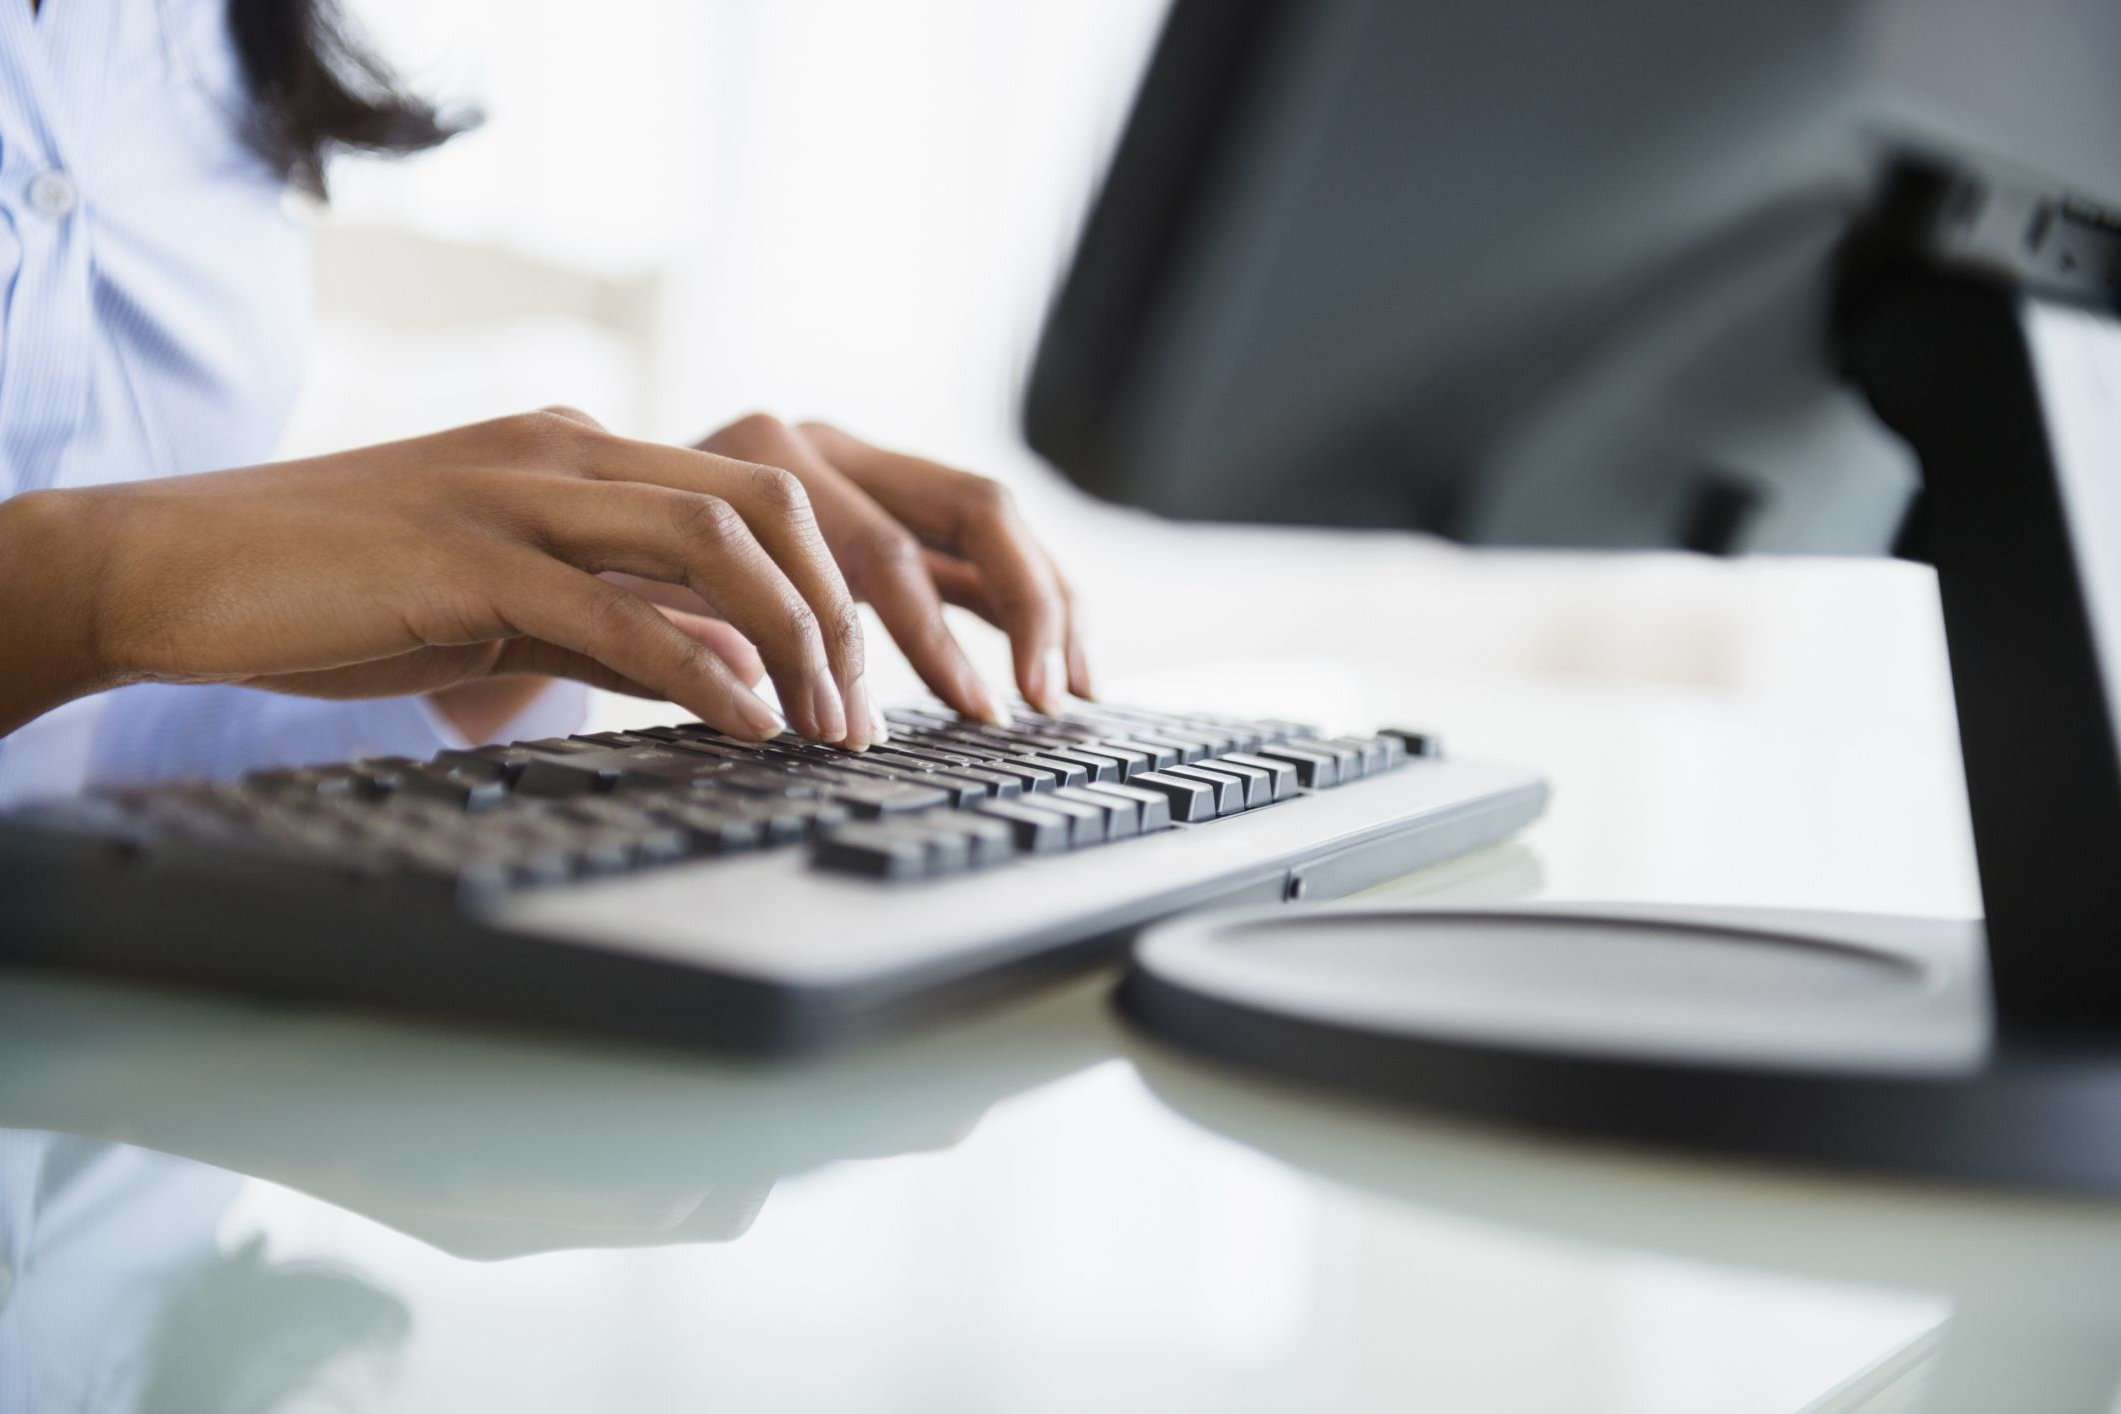 A woman using a keyboard at a desk.